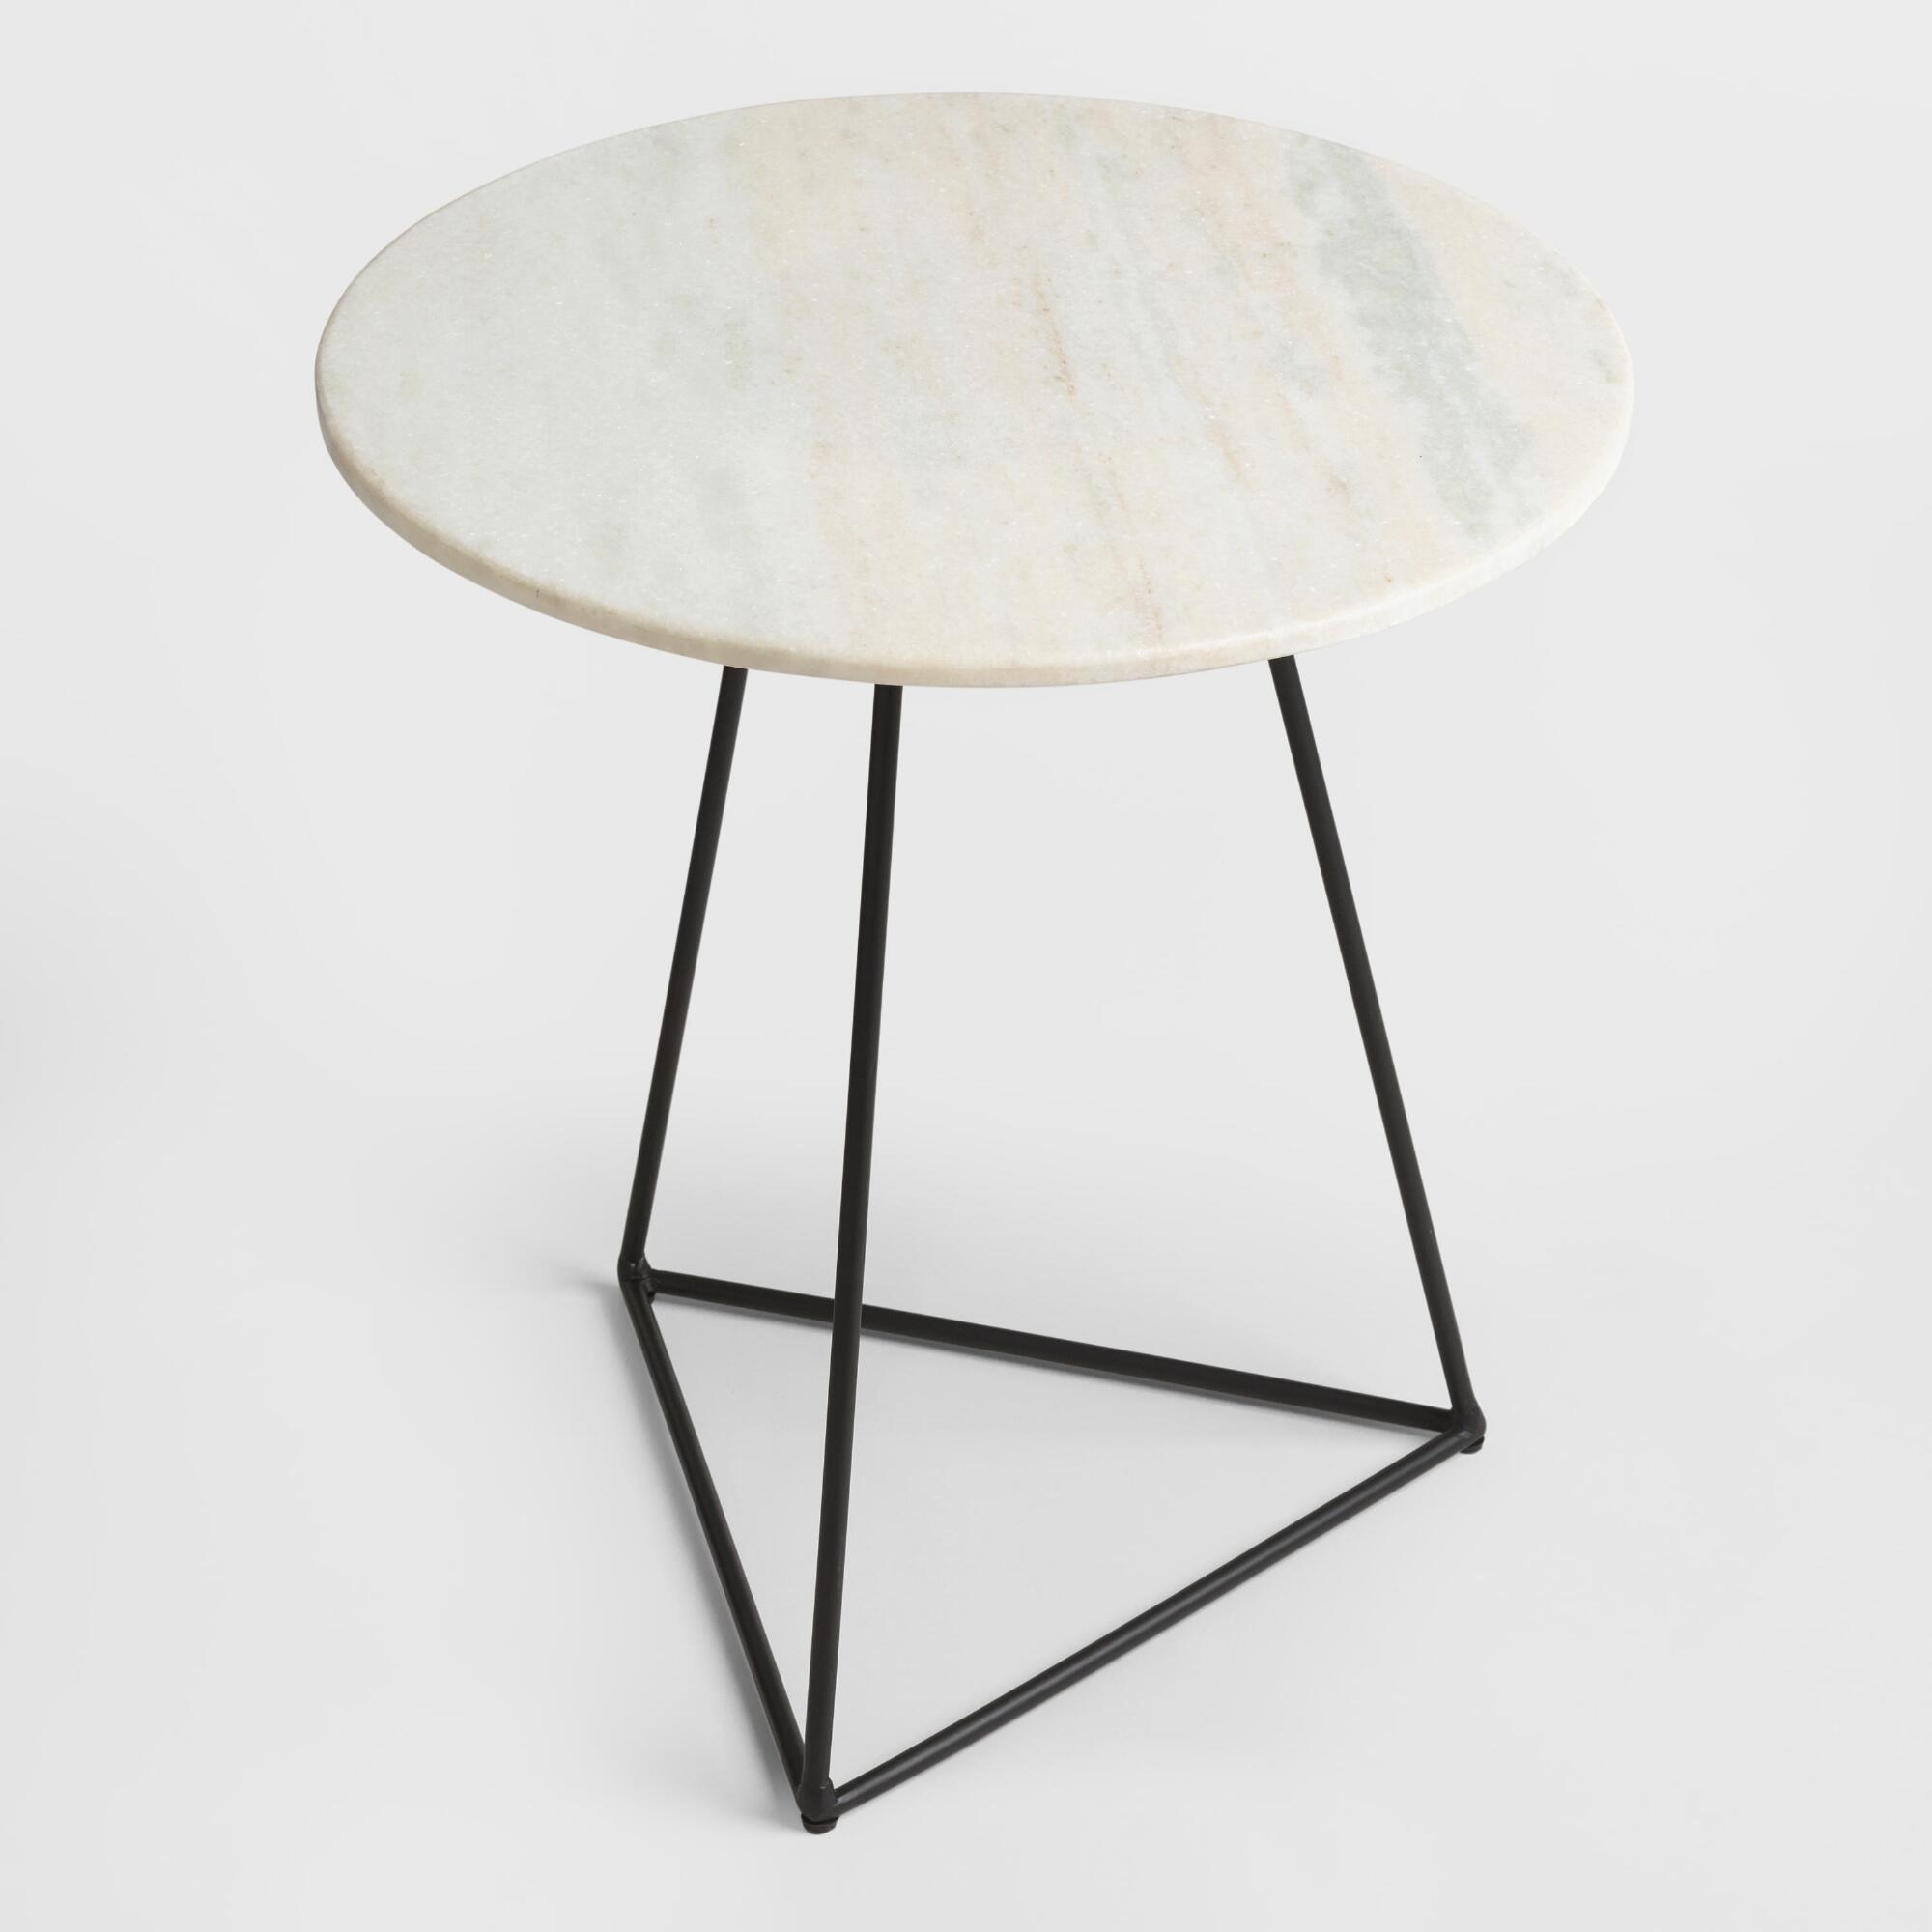 white marble and metal round accent table world market products target air fryer family room end tables blue runner gold jcp bedding oversized outdoor umbrellas black dining